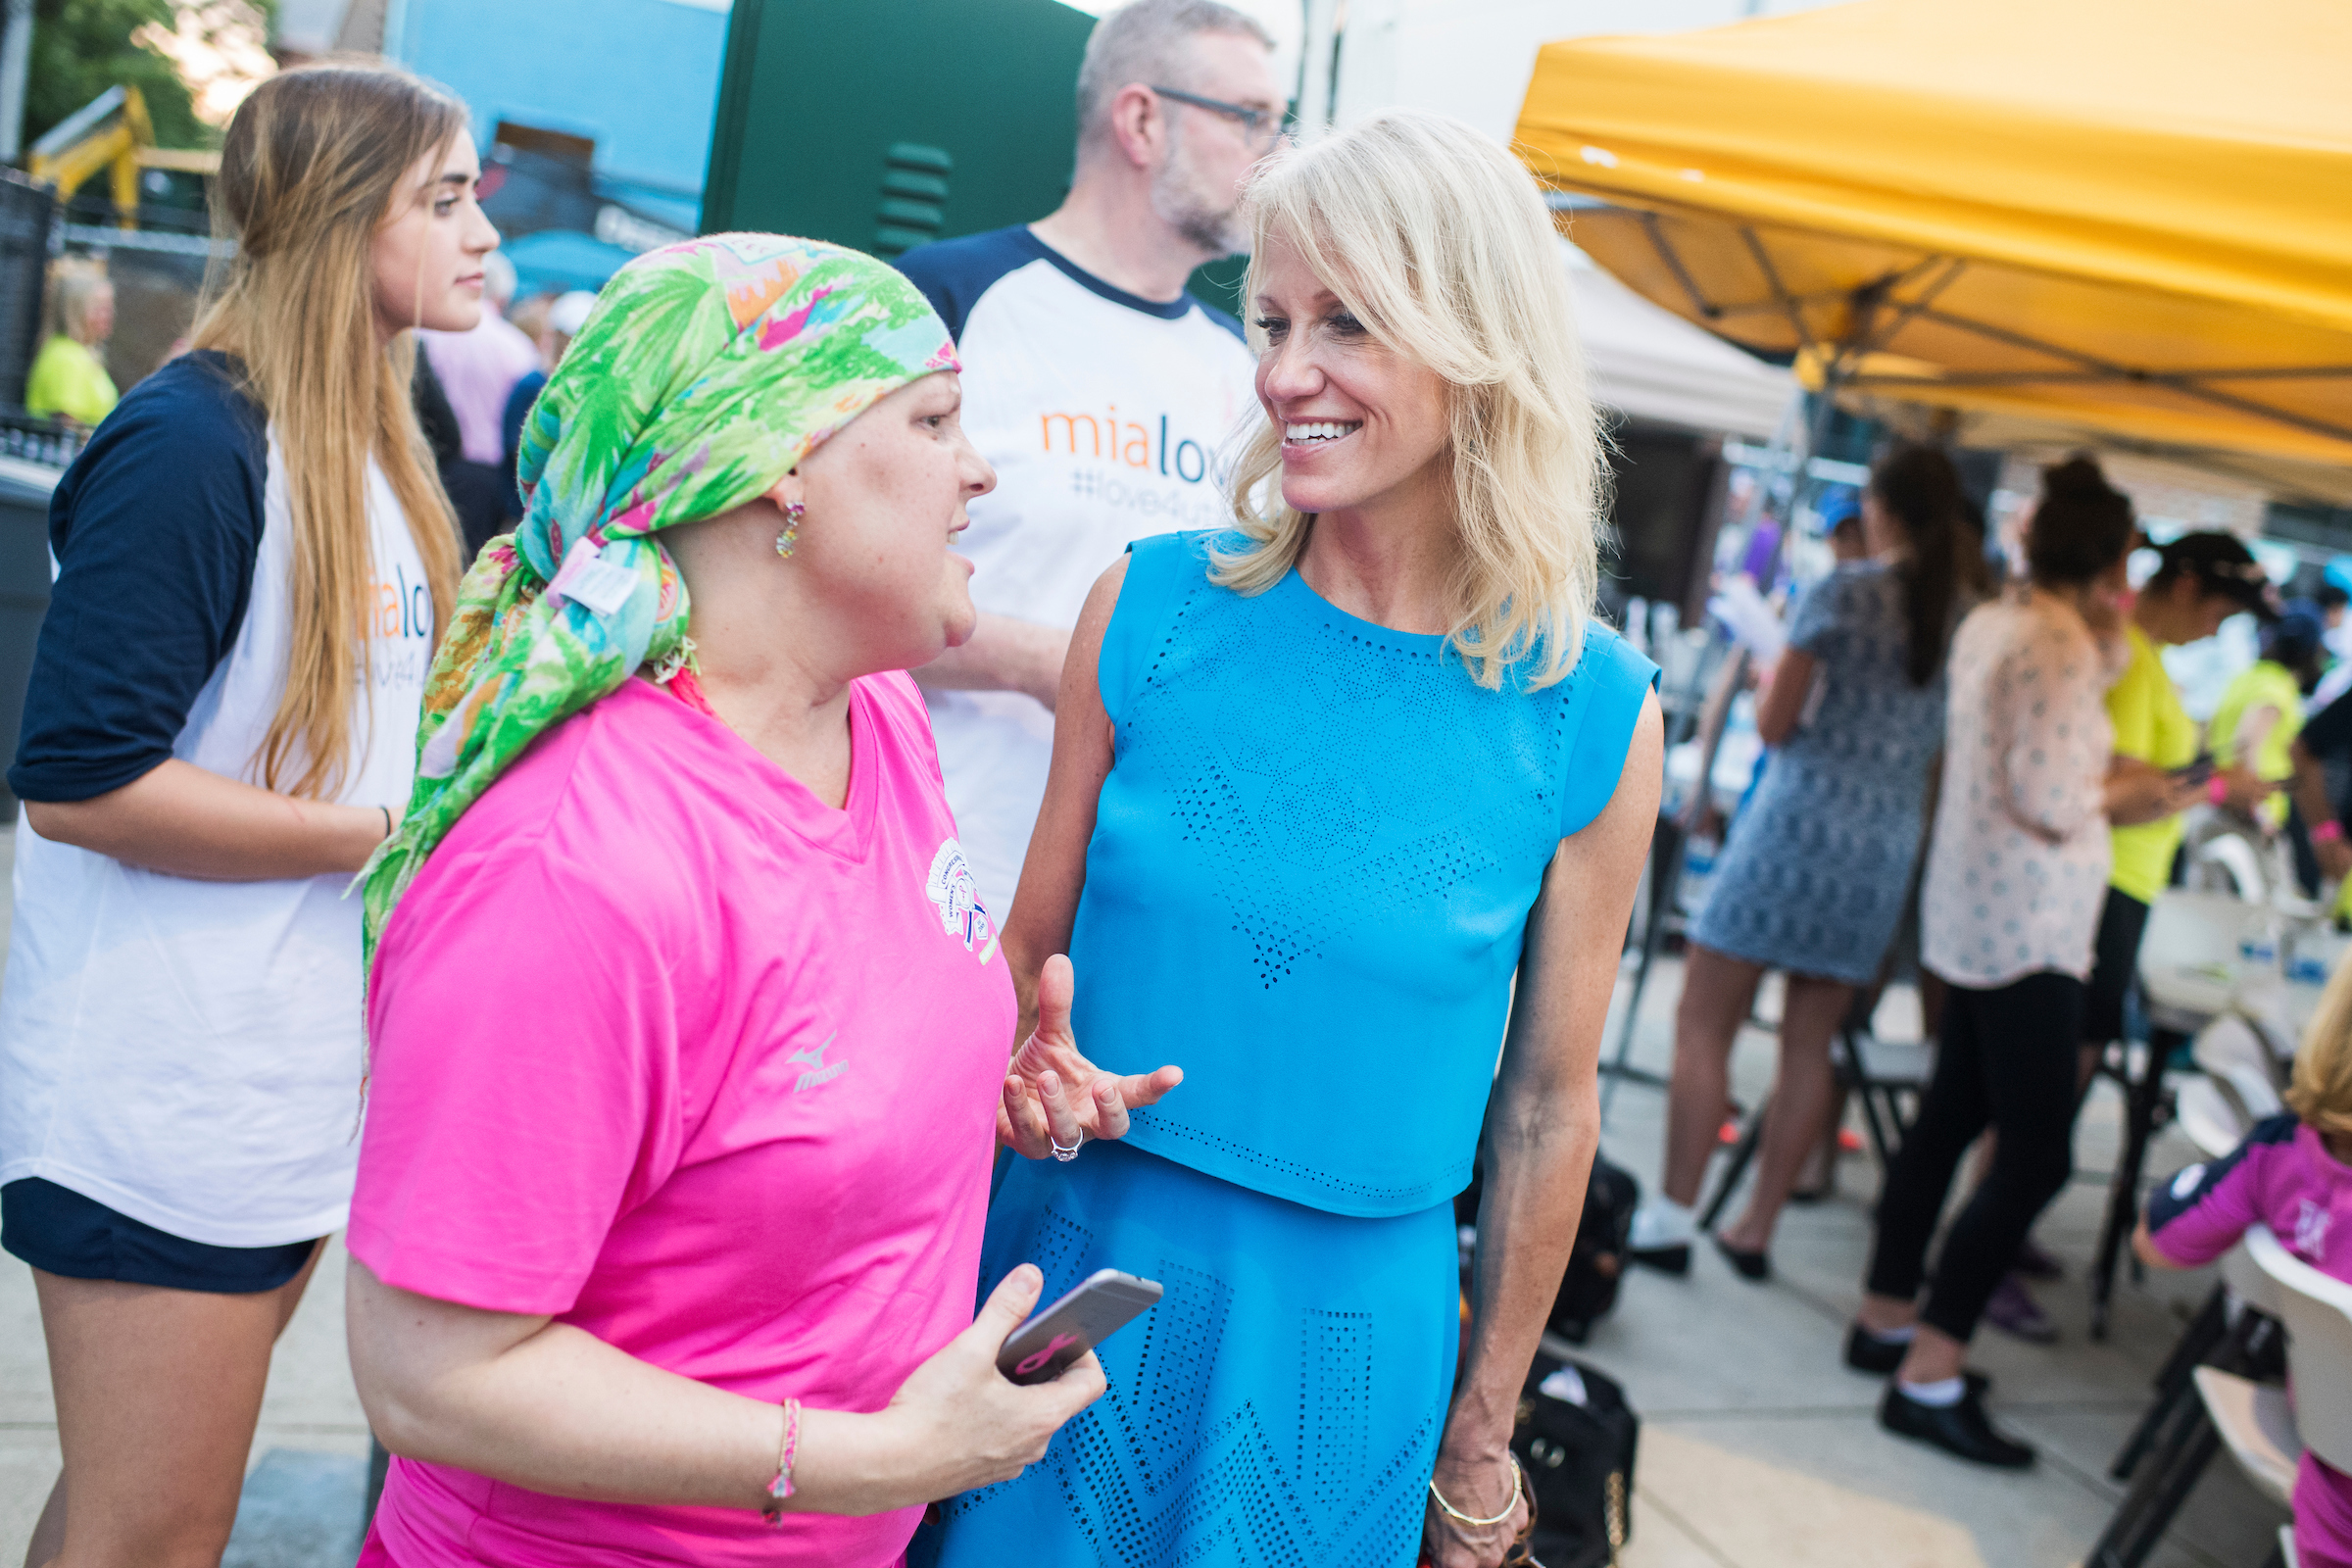 UNITED STATES - JUNE 21: Kellyanne Conway, right, talks with a guest during the Congressional Women's Softball game that pits Congresswomen against female journalists at Watkins Recreation Center on Capitol Hill, June 21, 2017. The game benefits the Young Survival Coalition that helps young women with breast cancer. The press team prevailed 2-1. (Photo By Tom Williams/CQ Roll Call)